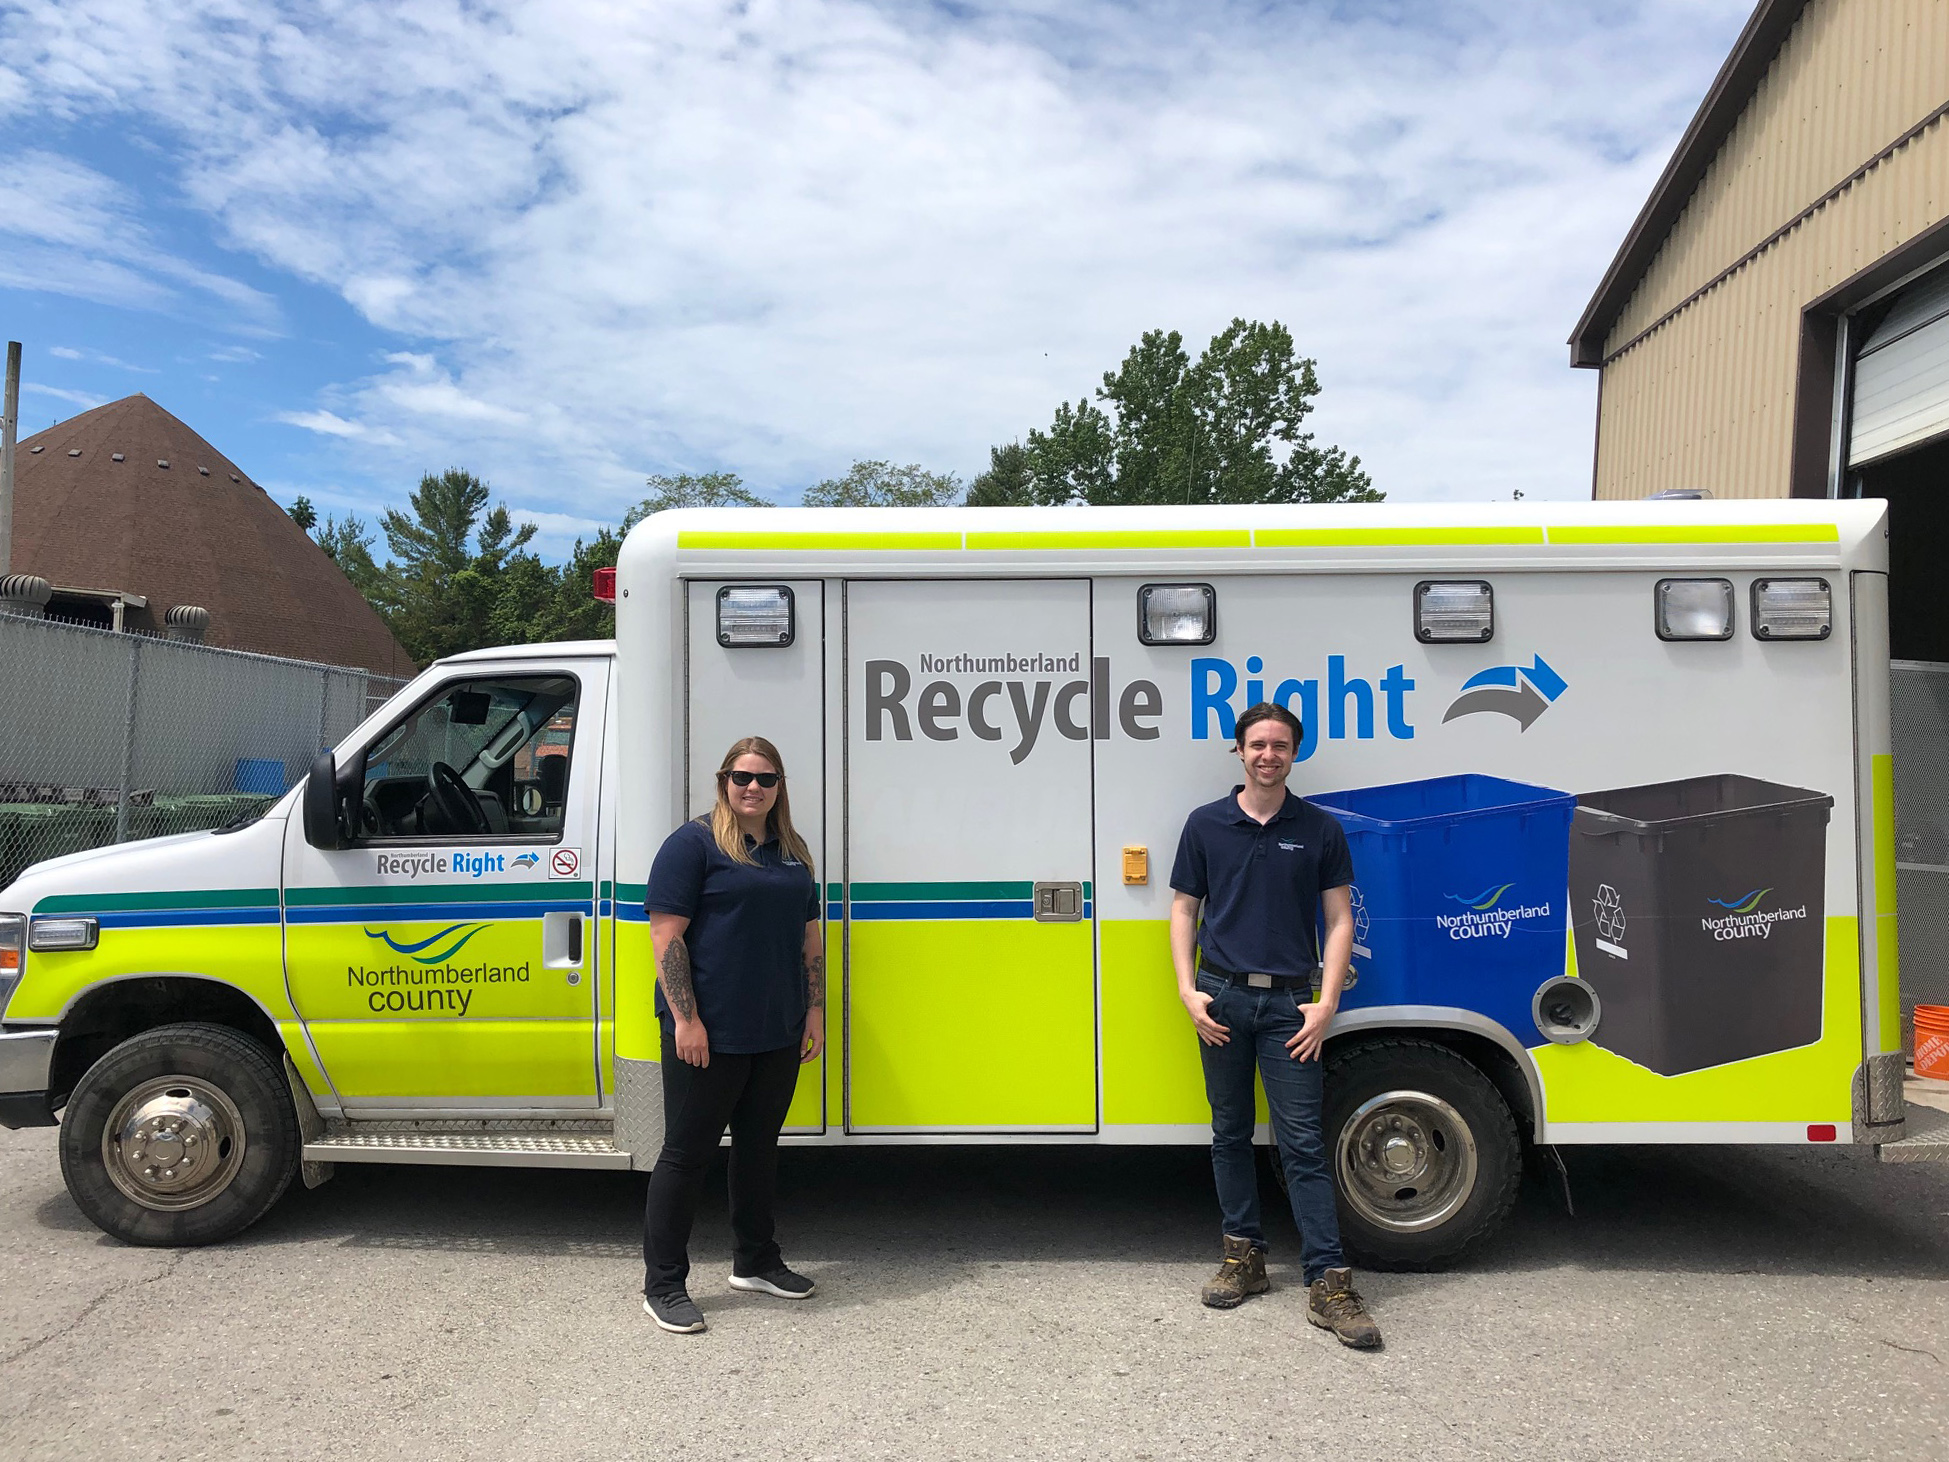 Northumberland County Waste Department staff begin delivering Recycle Right bins